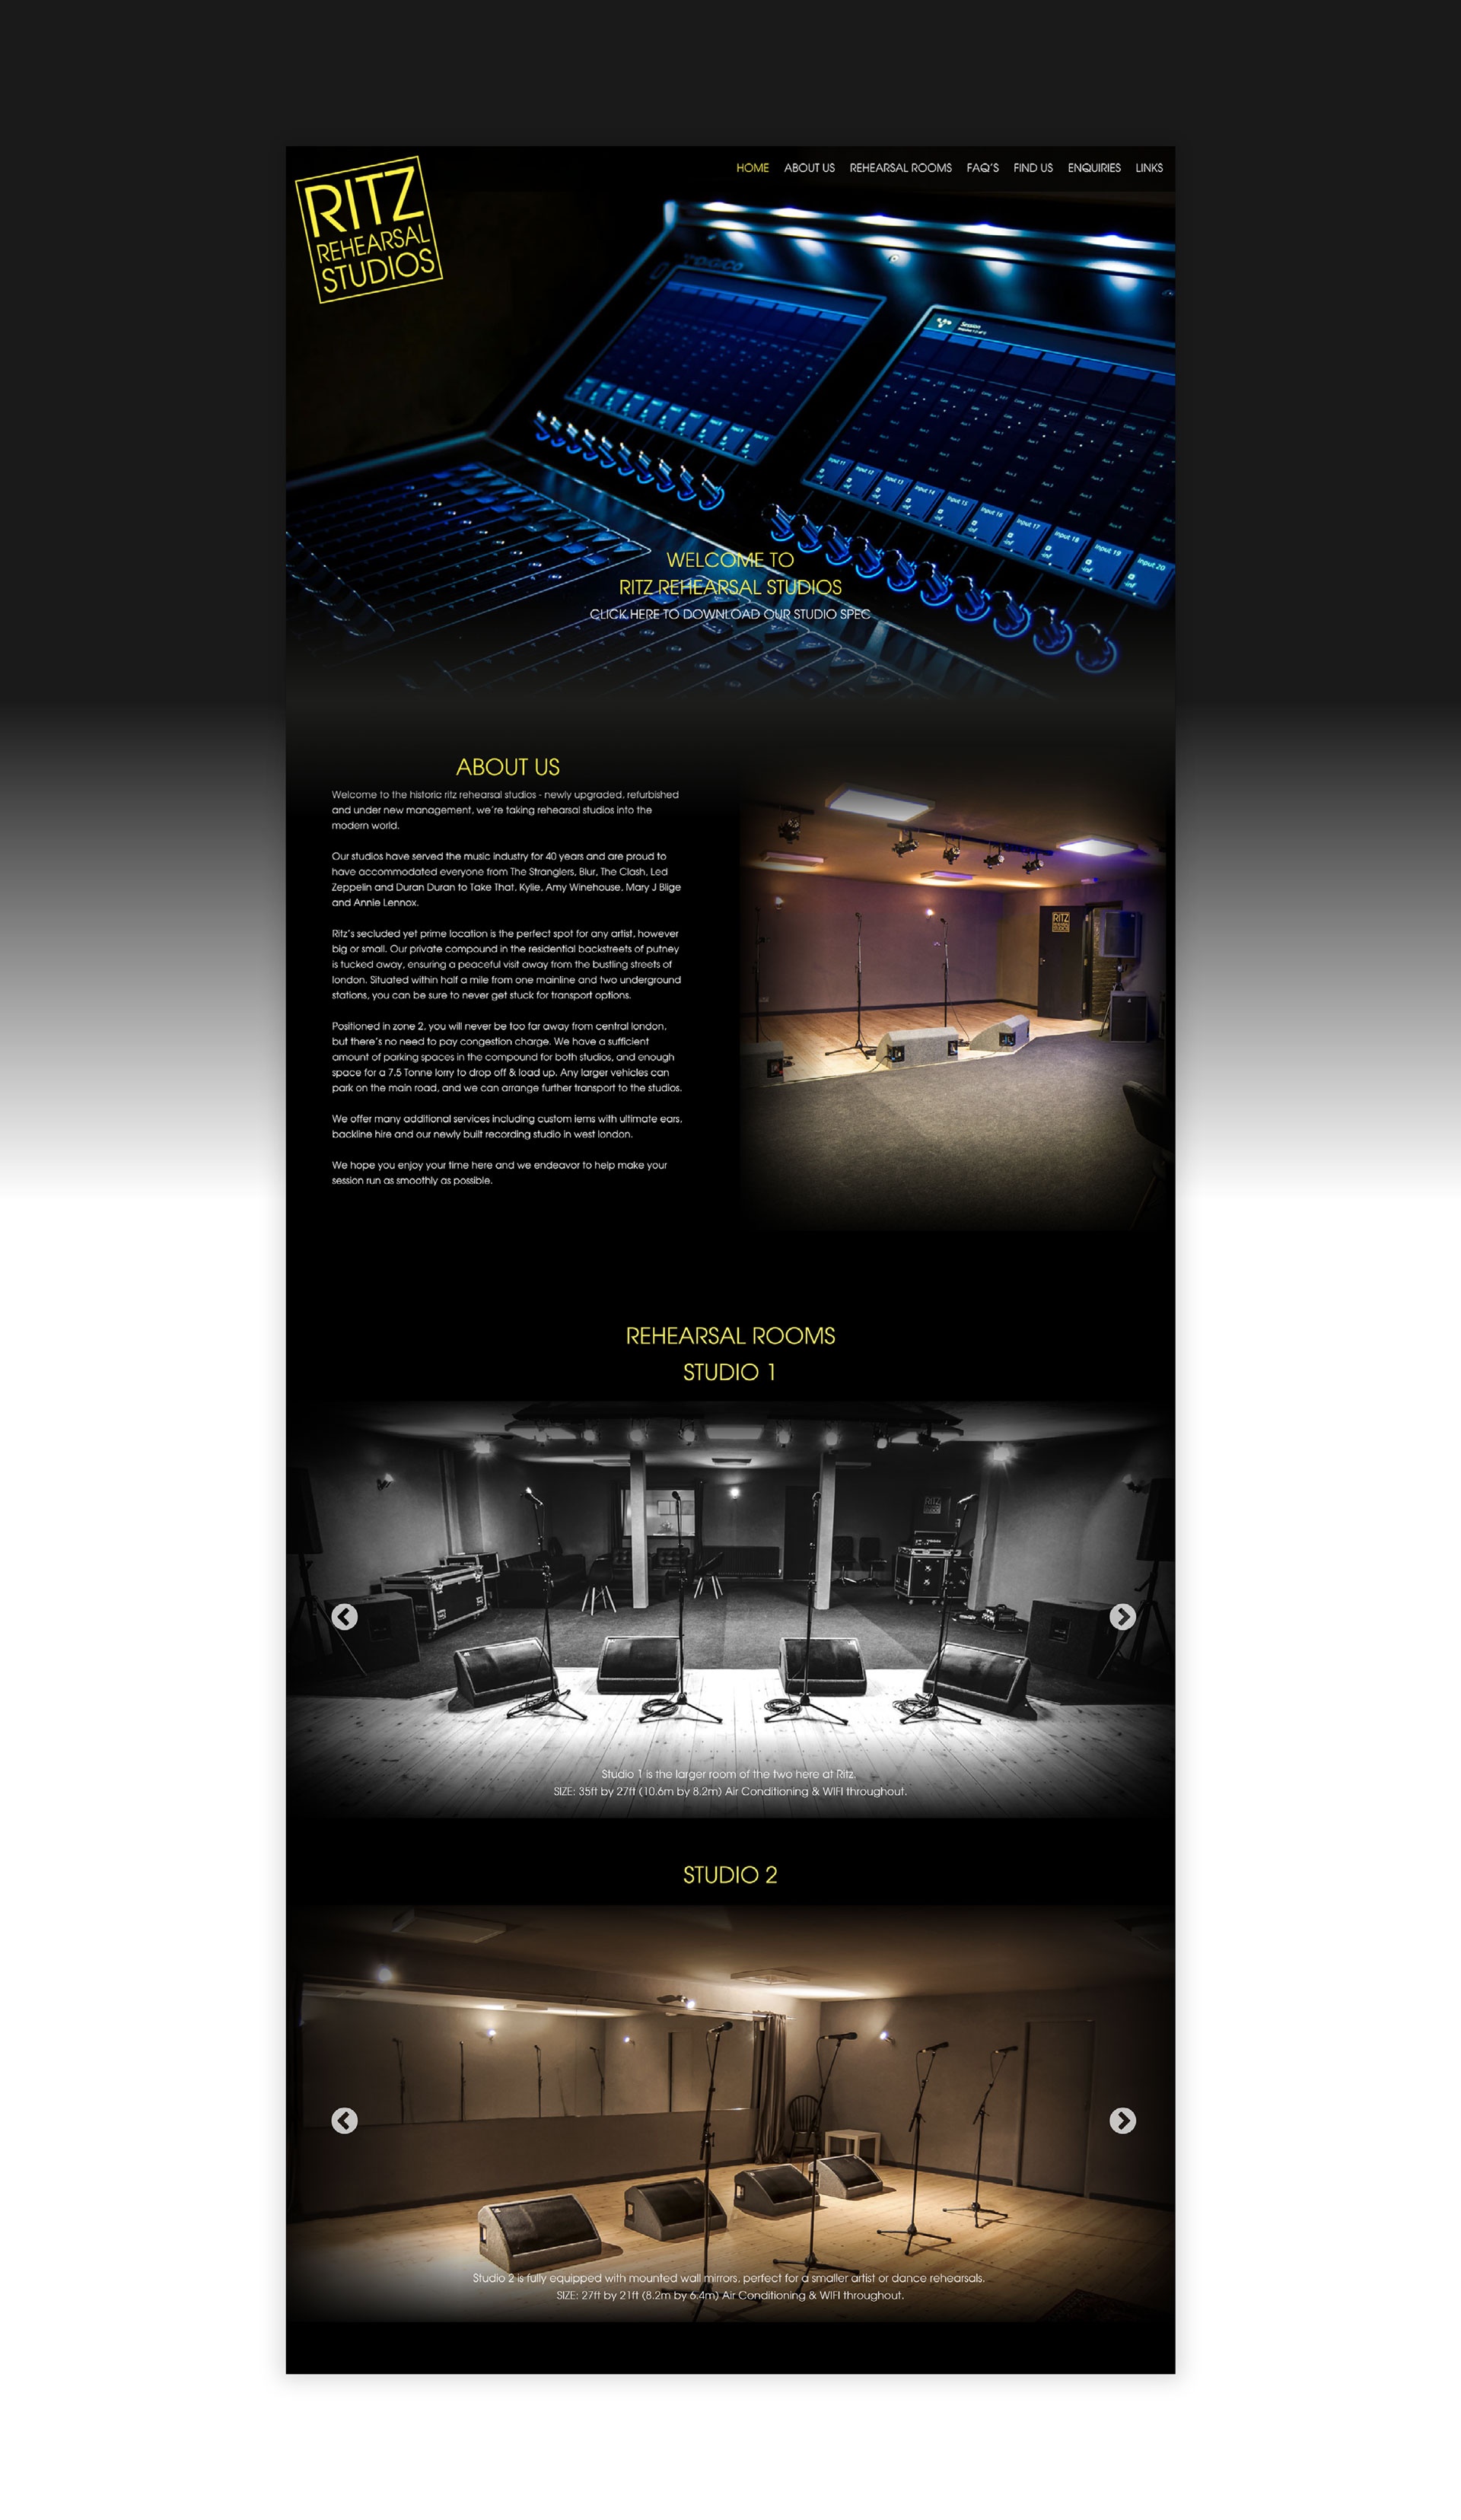 Ritz Rehearsal Studios Home Page